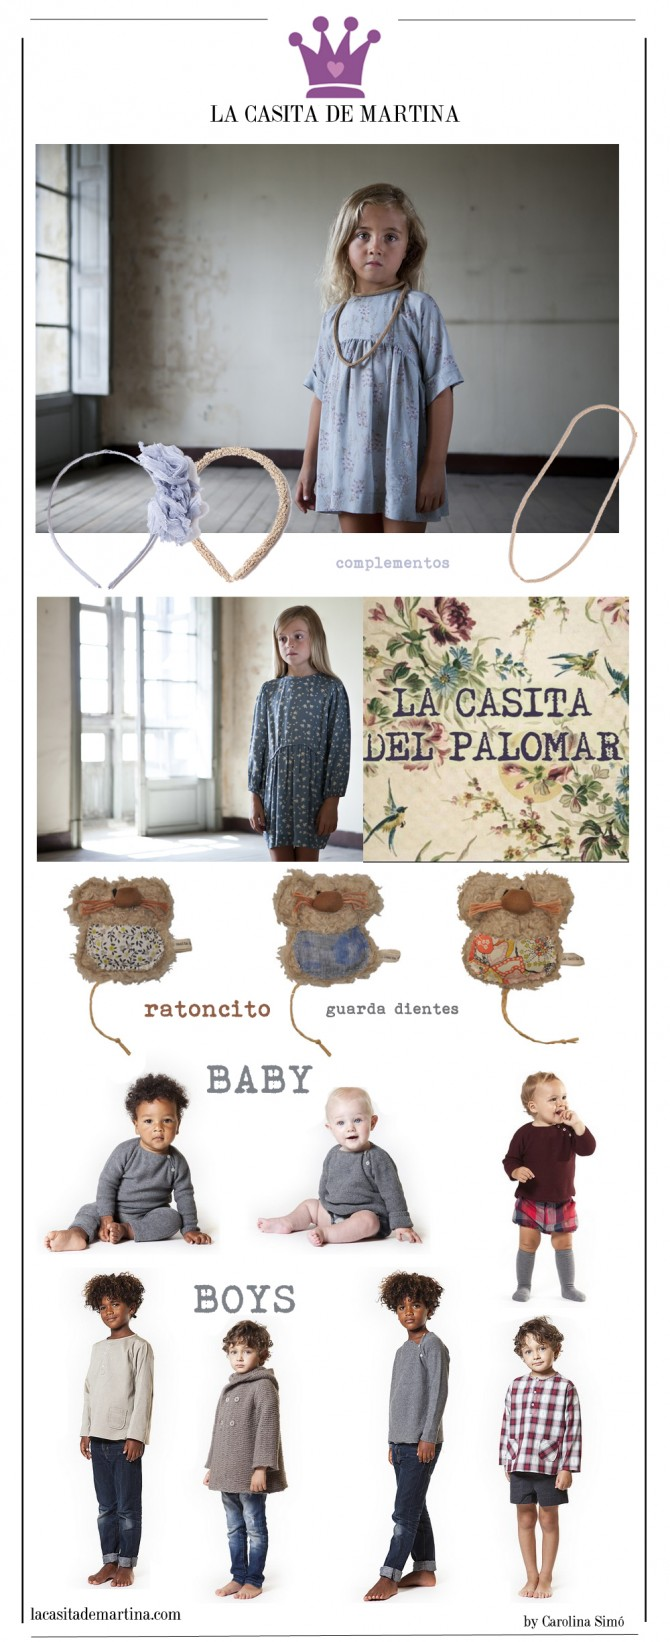 La casita del Palomar, Blog Moda Infantil, La casita de Martina, Tendencias Moda Infantil, Fashion Kids